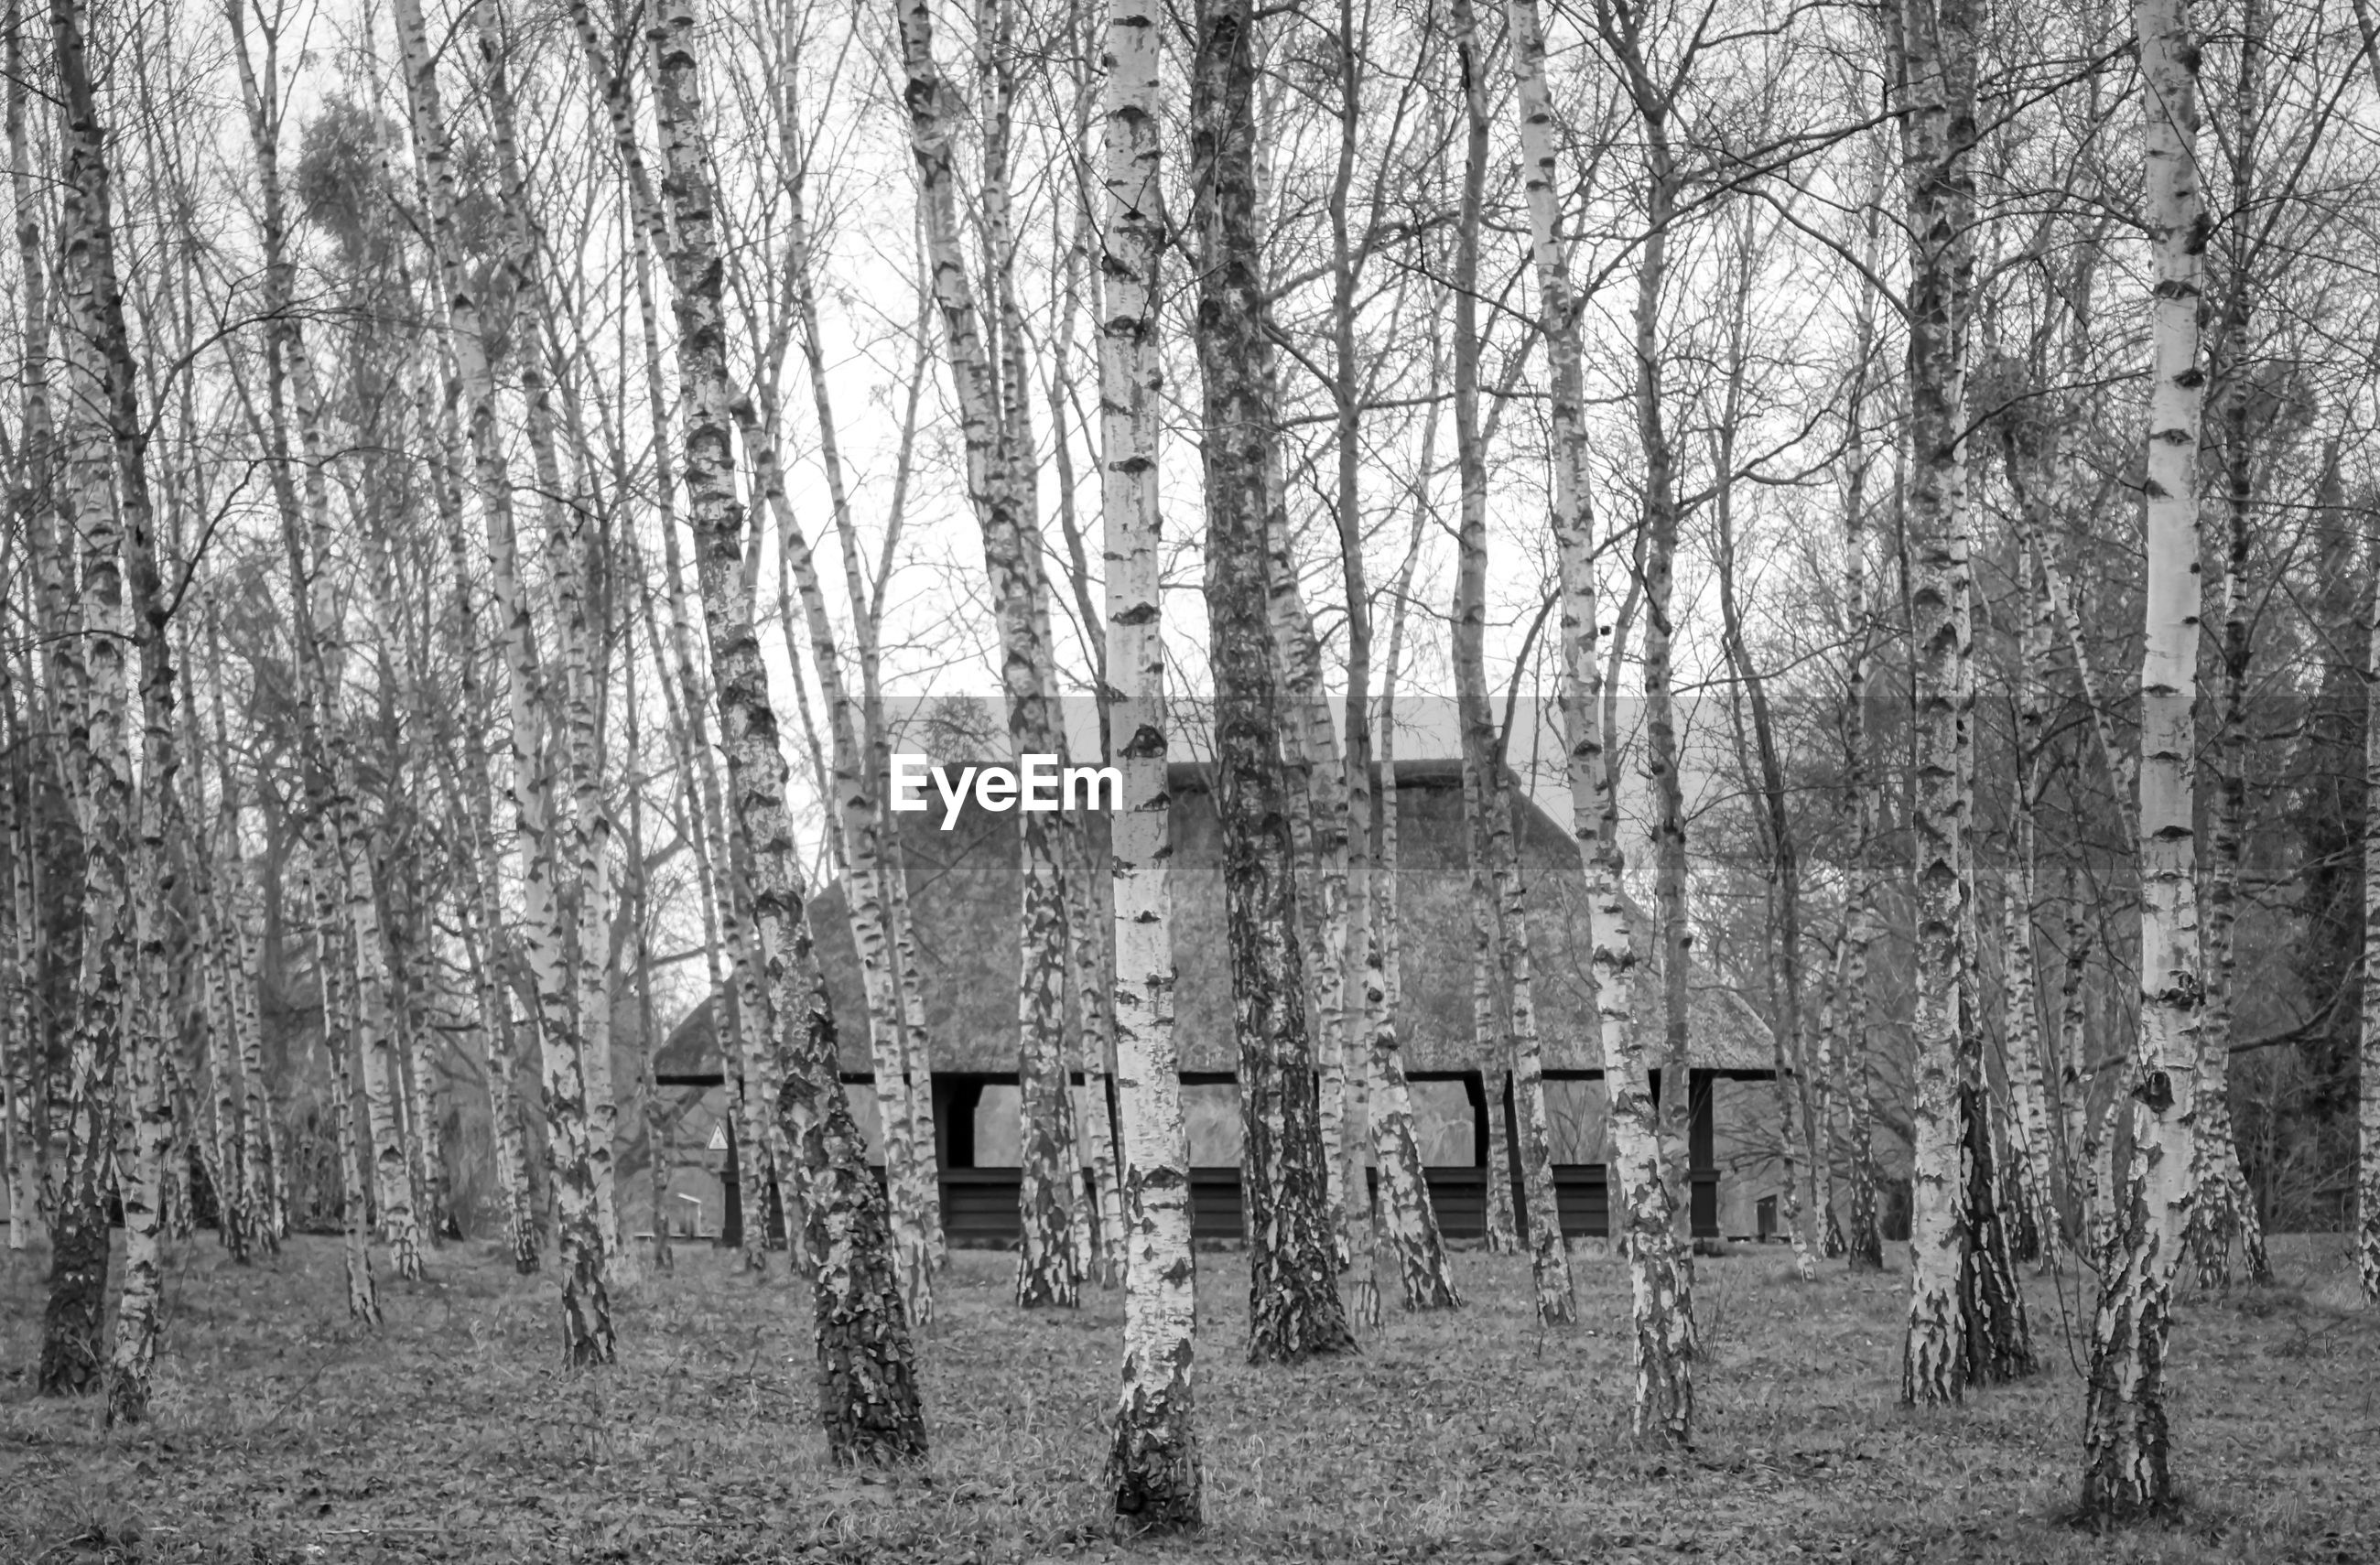 VIEW OF BARE TREES